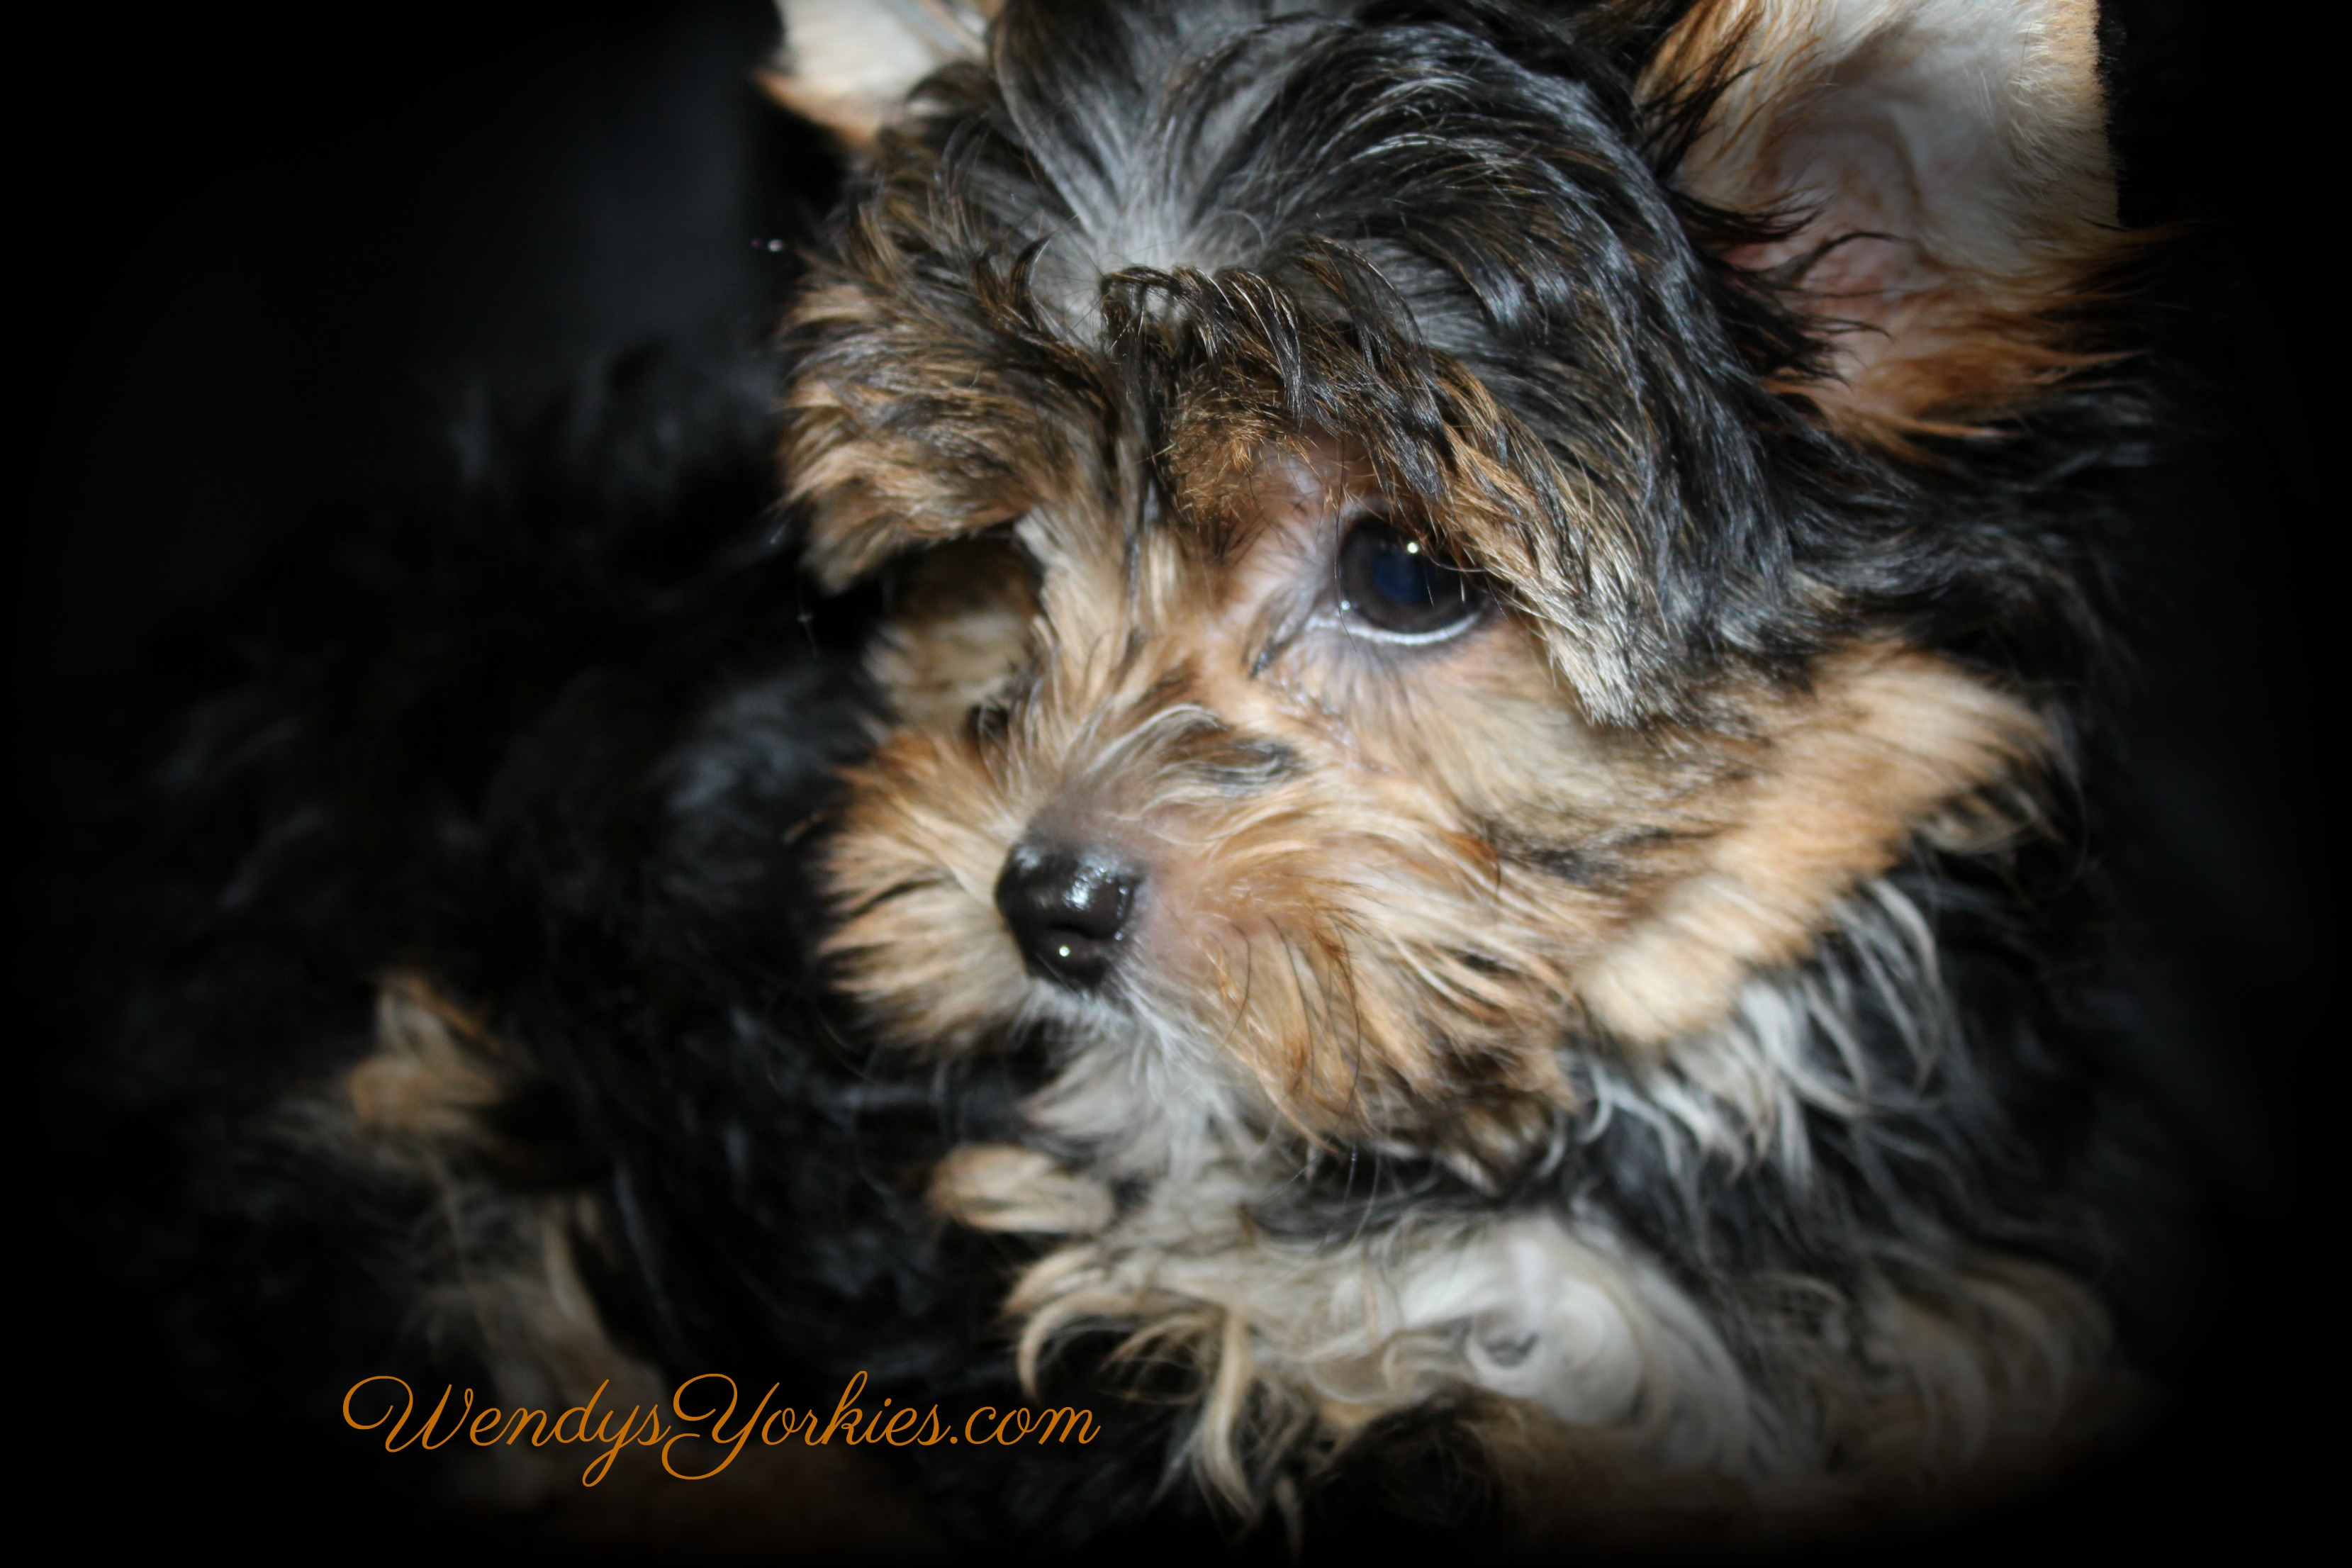 Teacup Male YOrkie puppy for sale, Loulou m1, WendysYorkies.com